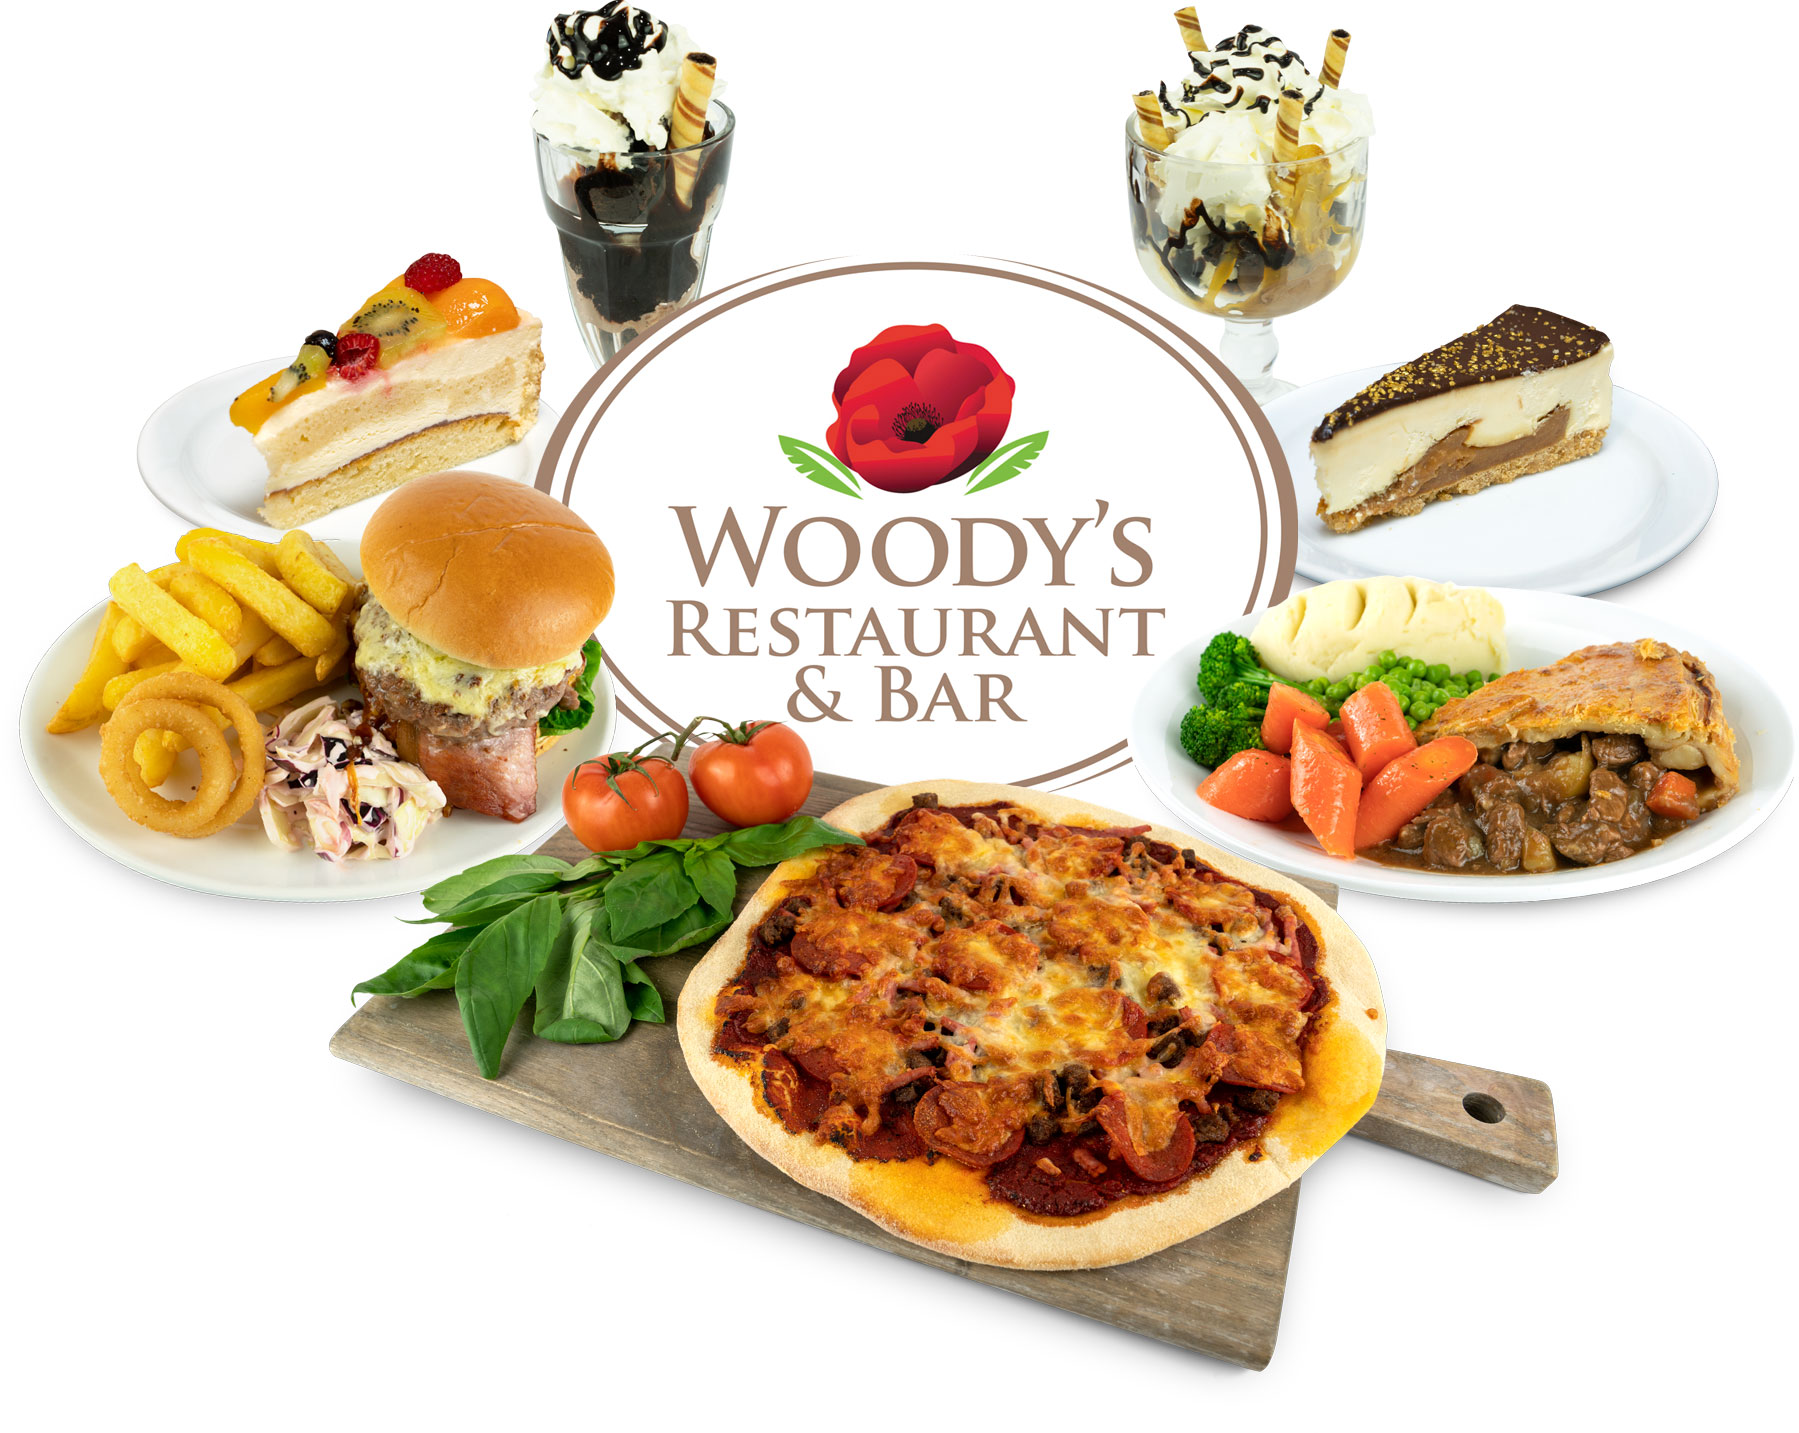 Woodys Restaurant and Bar